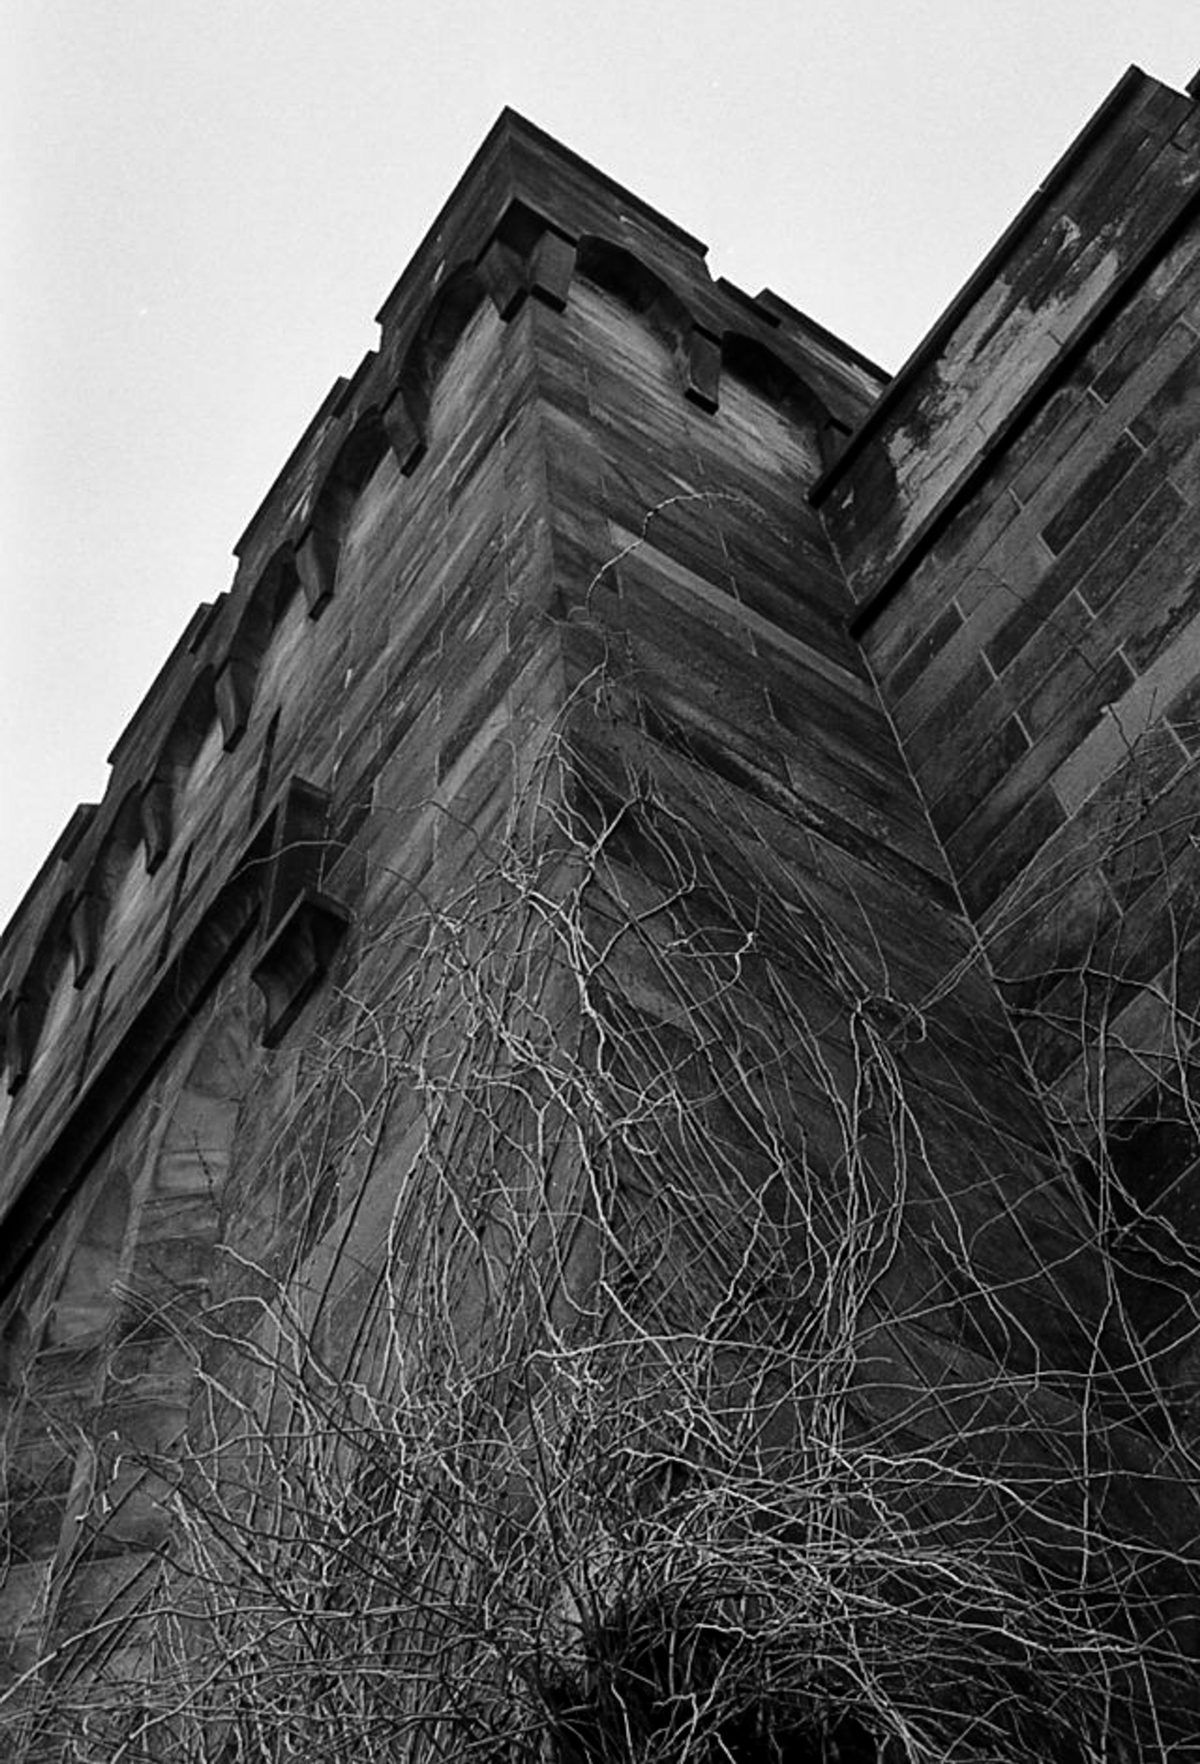 Eastern State Penitentiary's Gothic castle style architecture instills feelings of awe, power, and fear. I was limited by the lens I brought and couldn't capture the whole facade so I choose to focus on eery vines creeping up the stone walls.